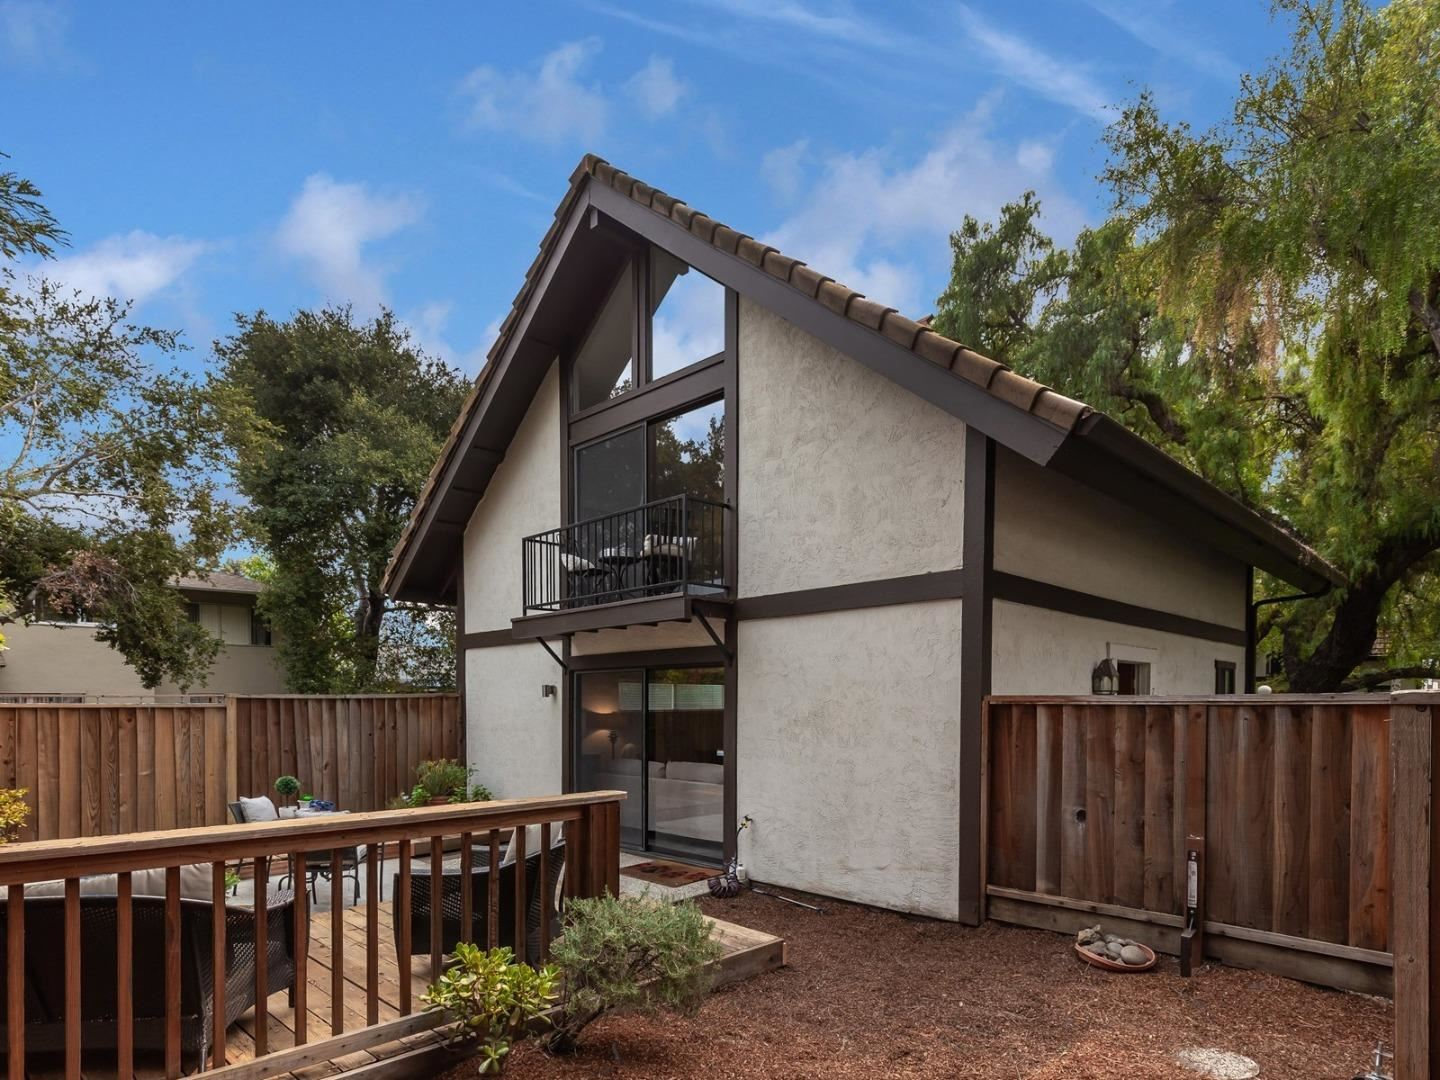 Photo for 1734 W El Camino Real 7 #7, MOUNTAIN VIEW, CA 94040 (MLS # ML81810255)